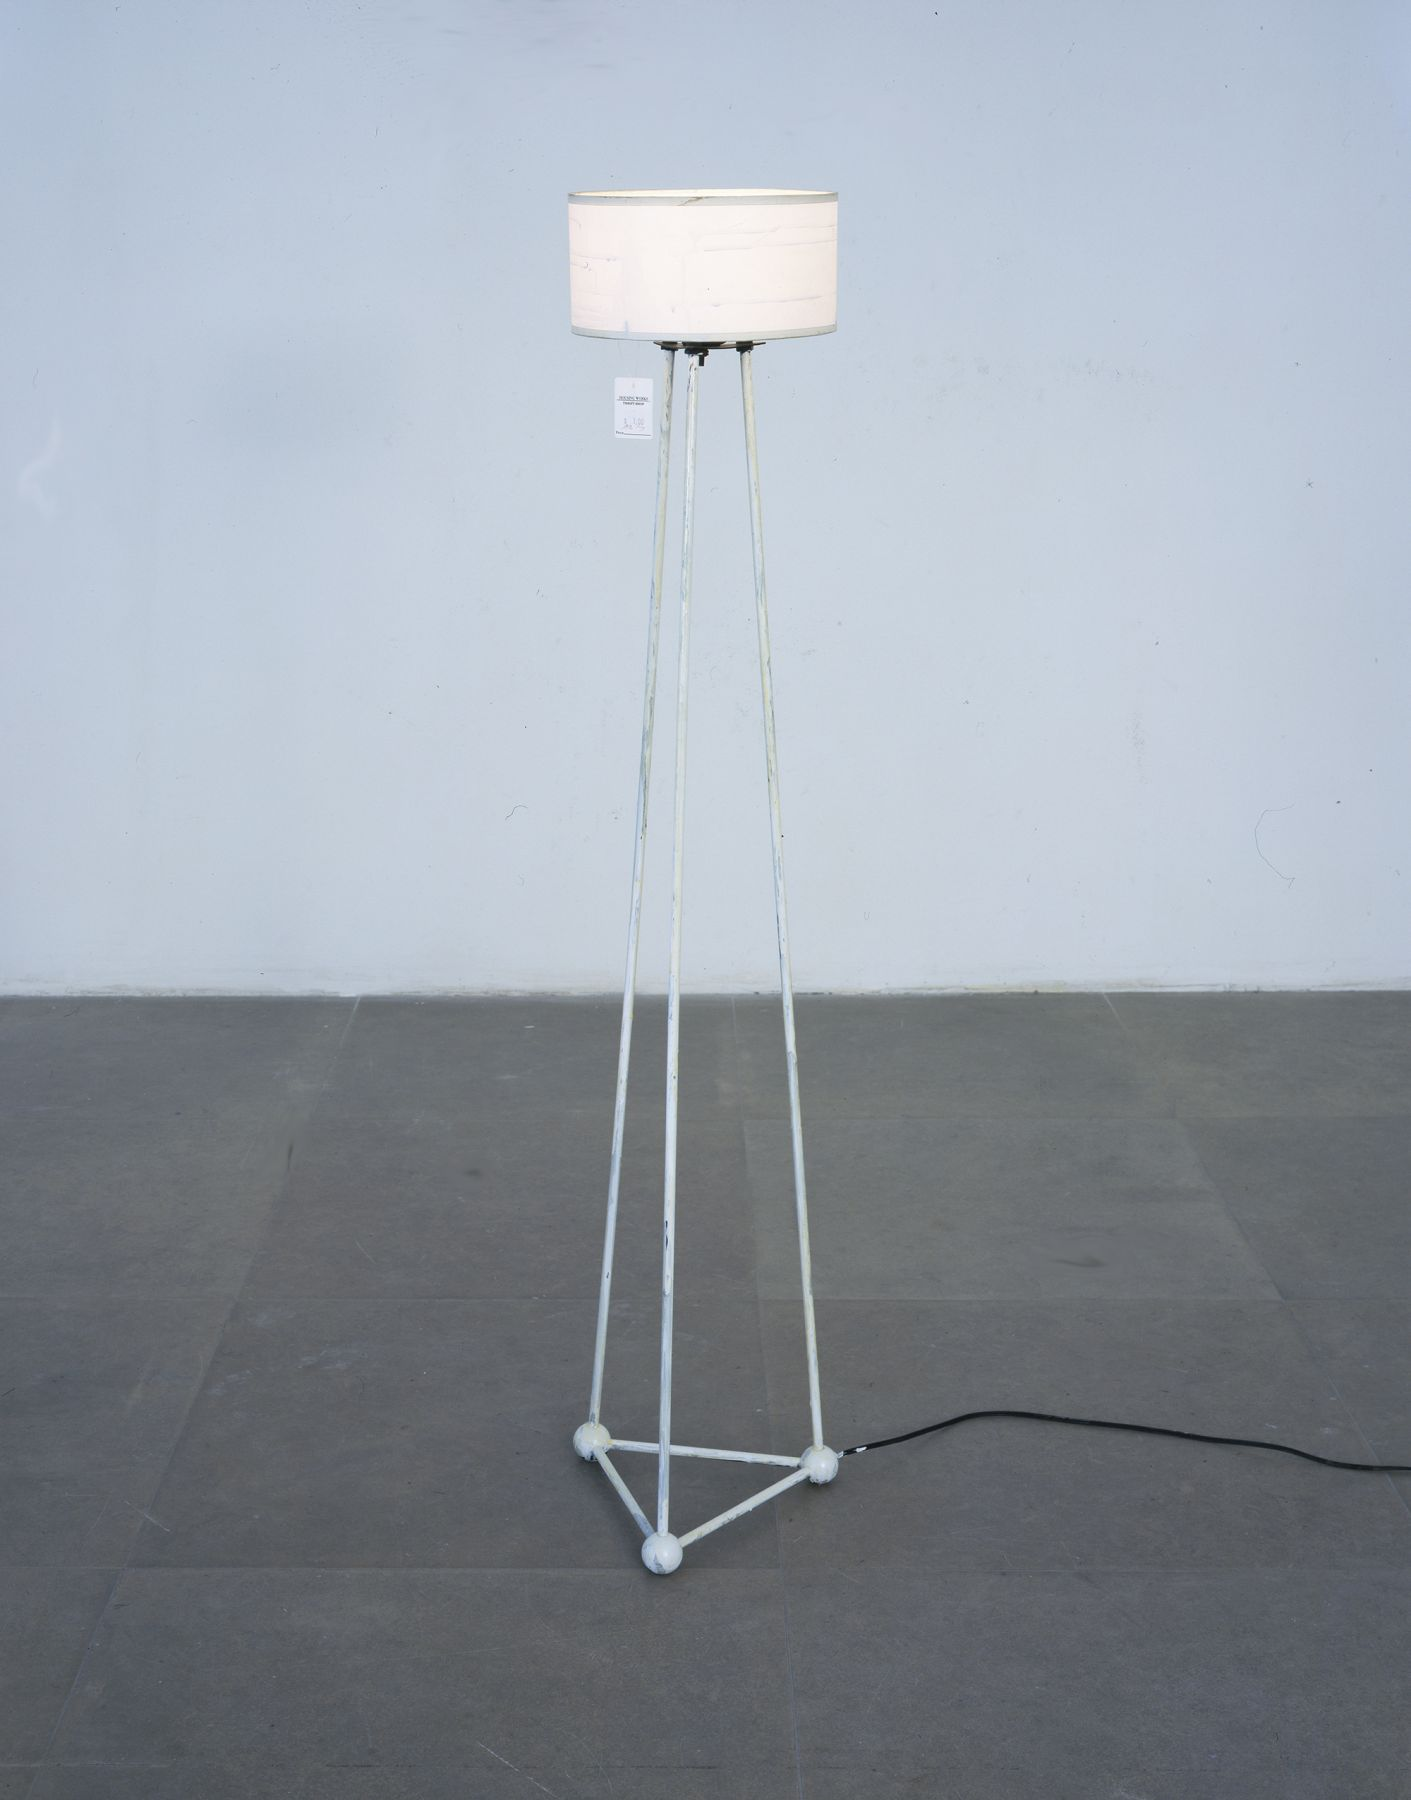 Reading Lamp, 2006, mixed media lamp, 49 x 9 x 9 inches (124.5 x 22.9 x 22.9 cm)